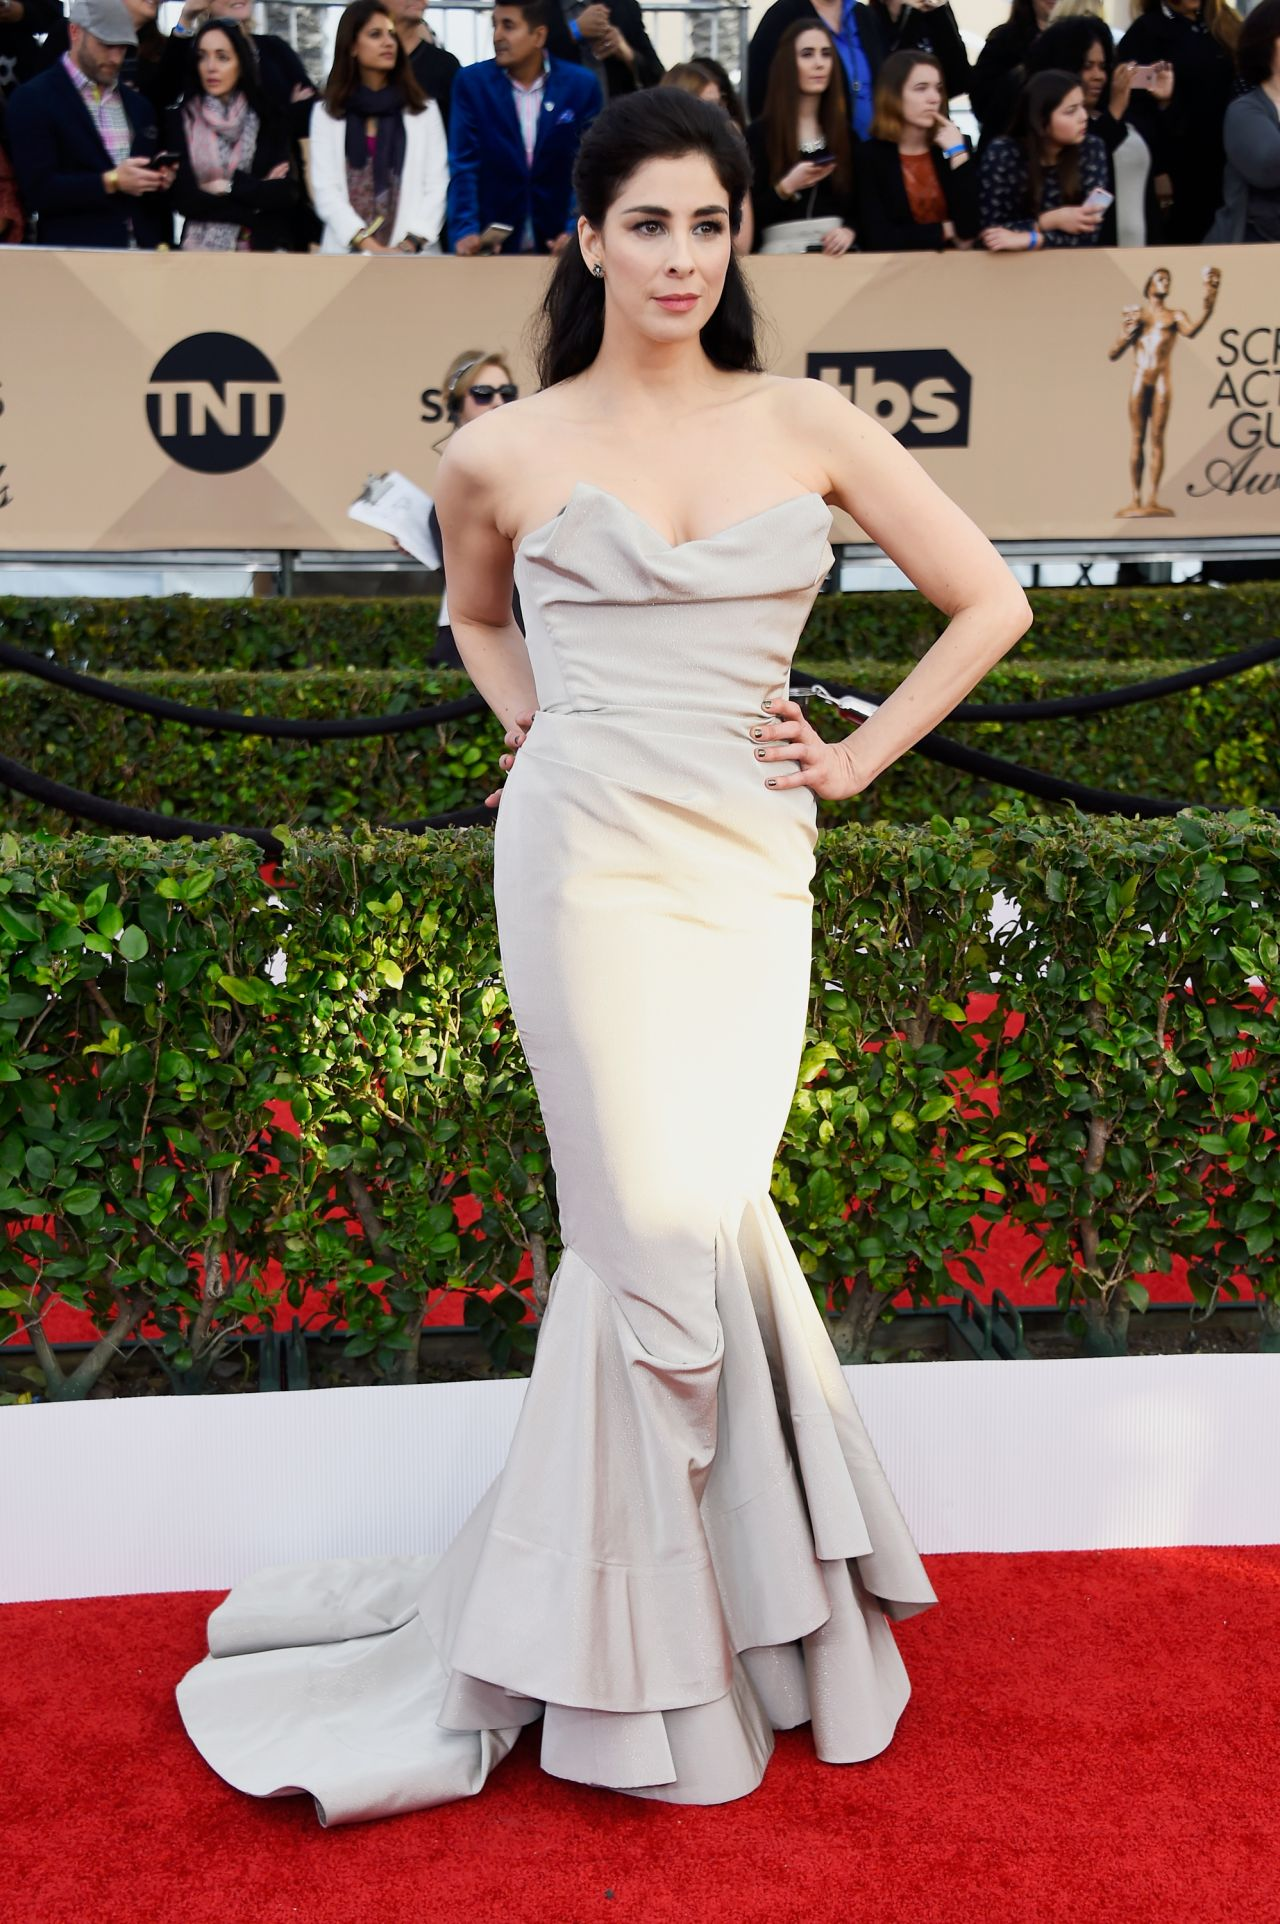 sarah-silverman-sag-awards-2016-at-shrine-auditorium-in-los-angeles-1